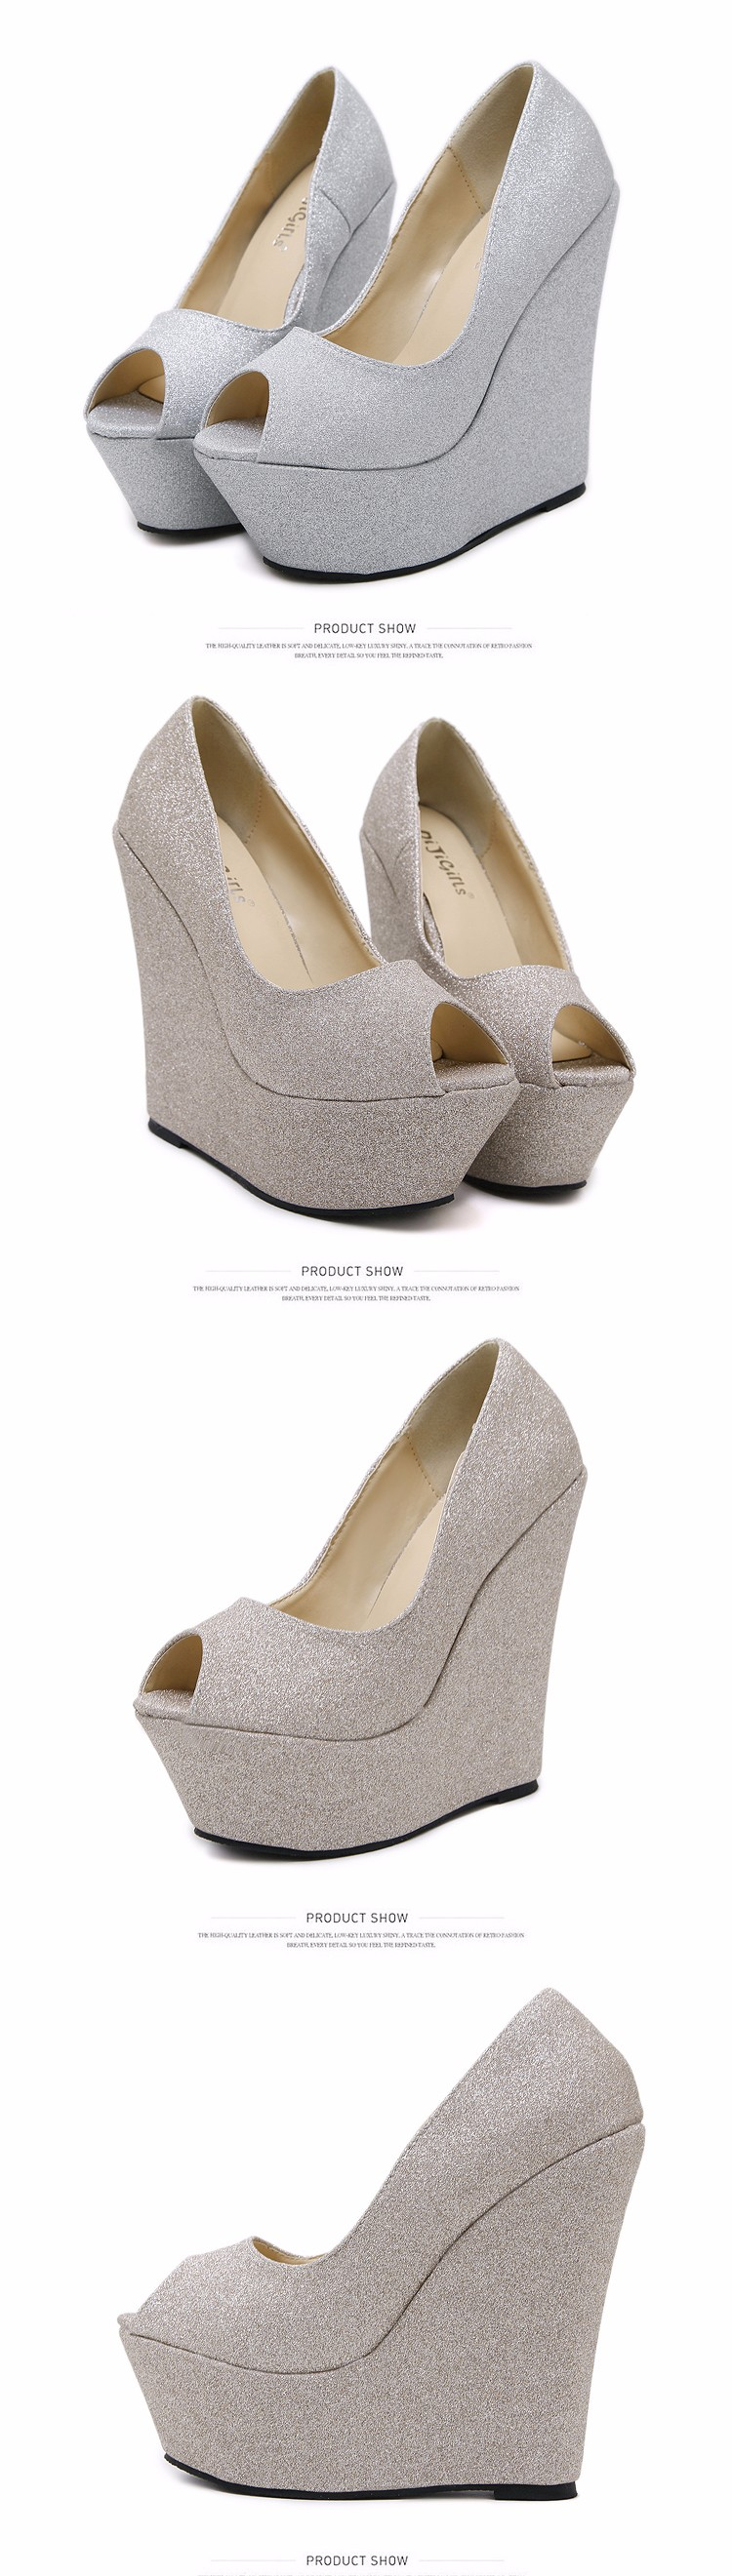 glitter shoes Platform shoes High Heels gold silver wedding Shoes peep toe High Heels Pumps Platform shoes Wedges pumps D925 4